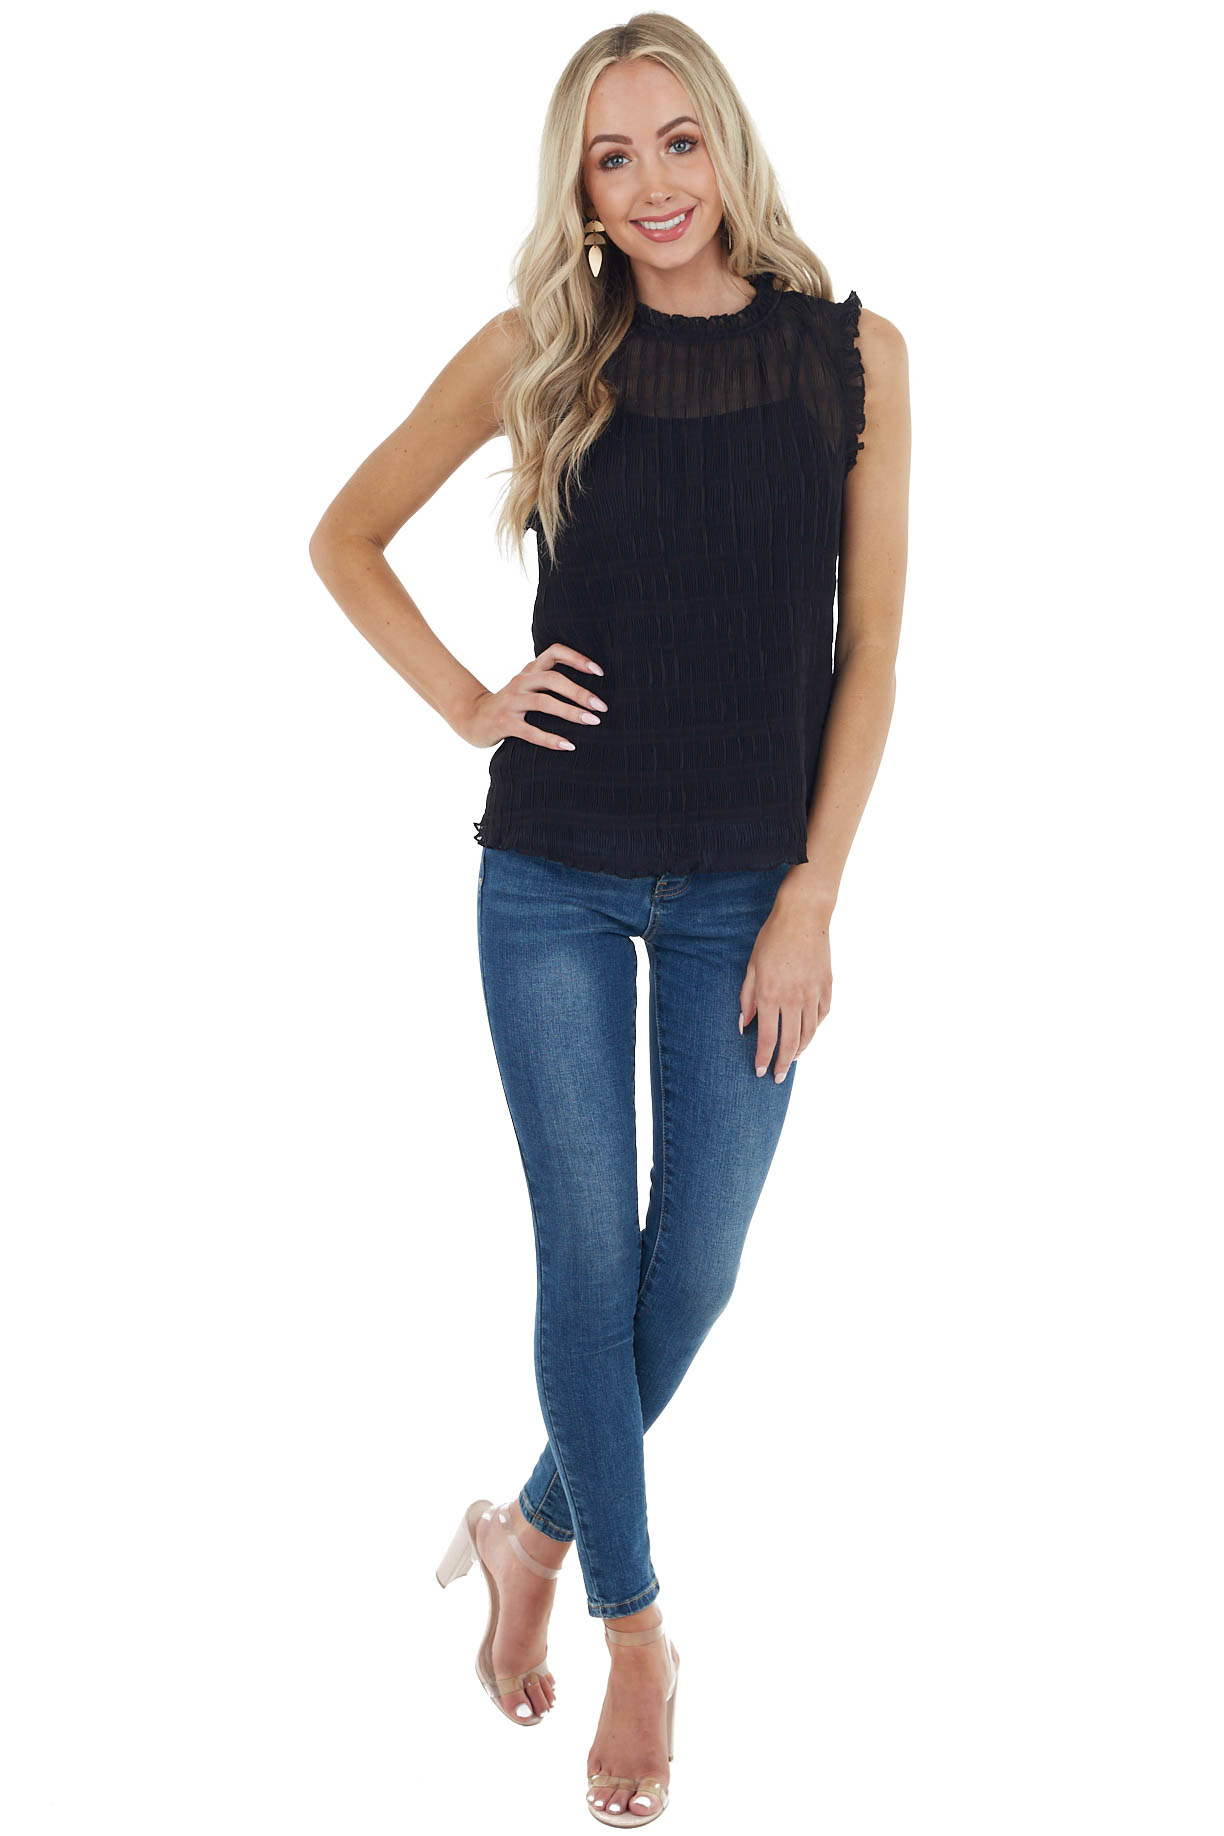 Black Accordion Textured Sleeveless Blouse with Frills